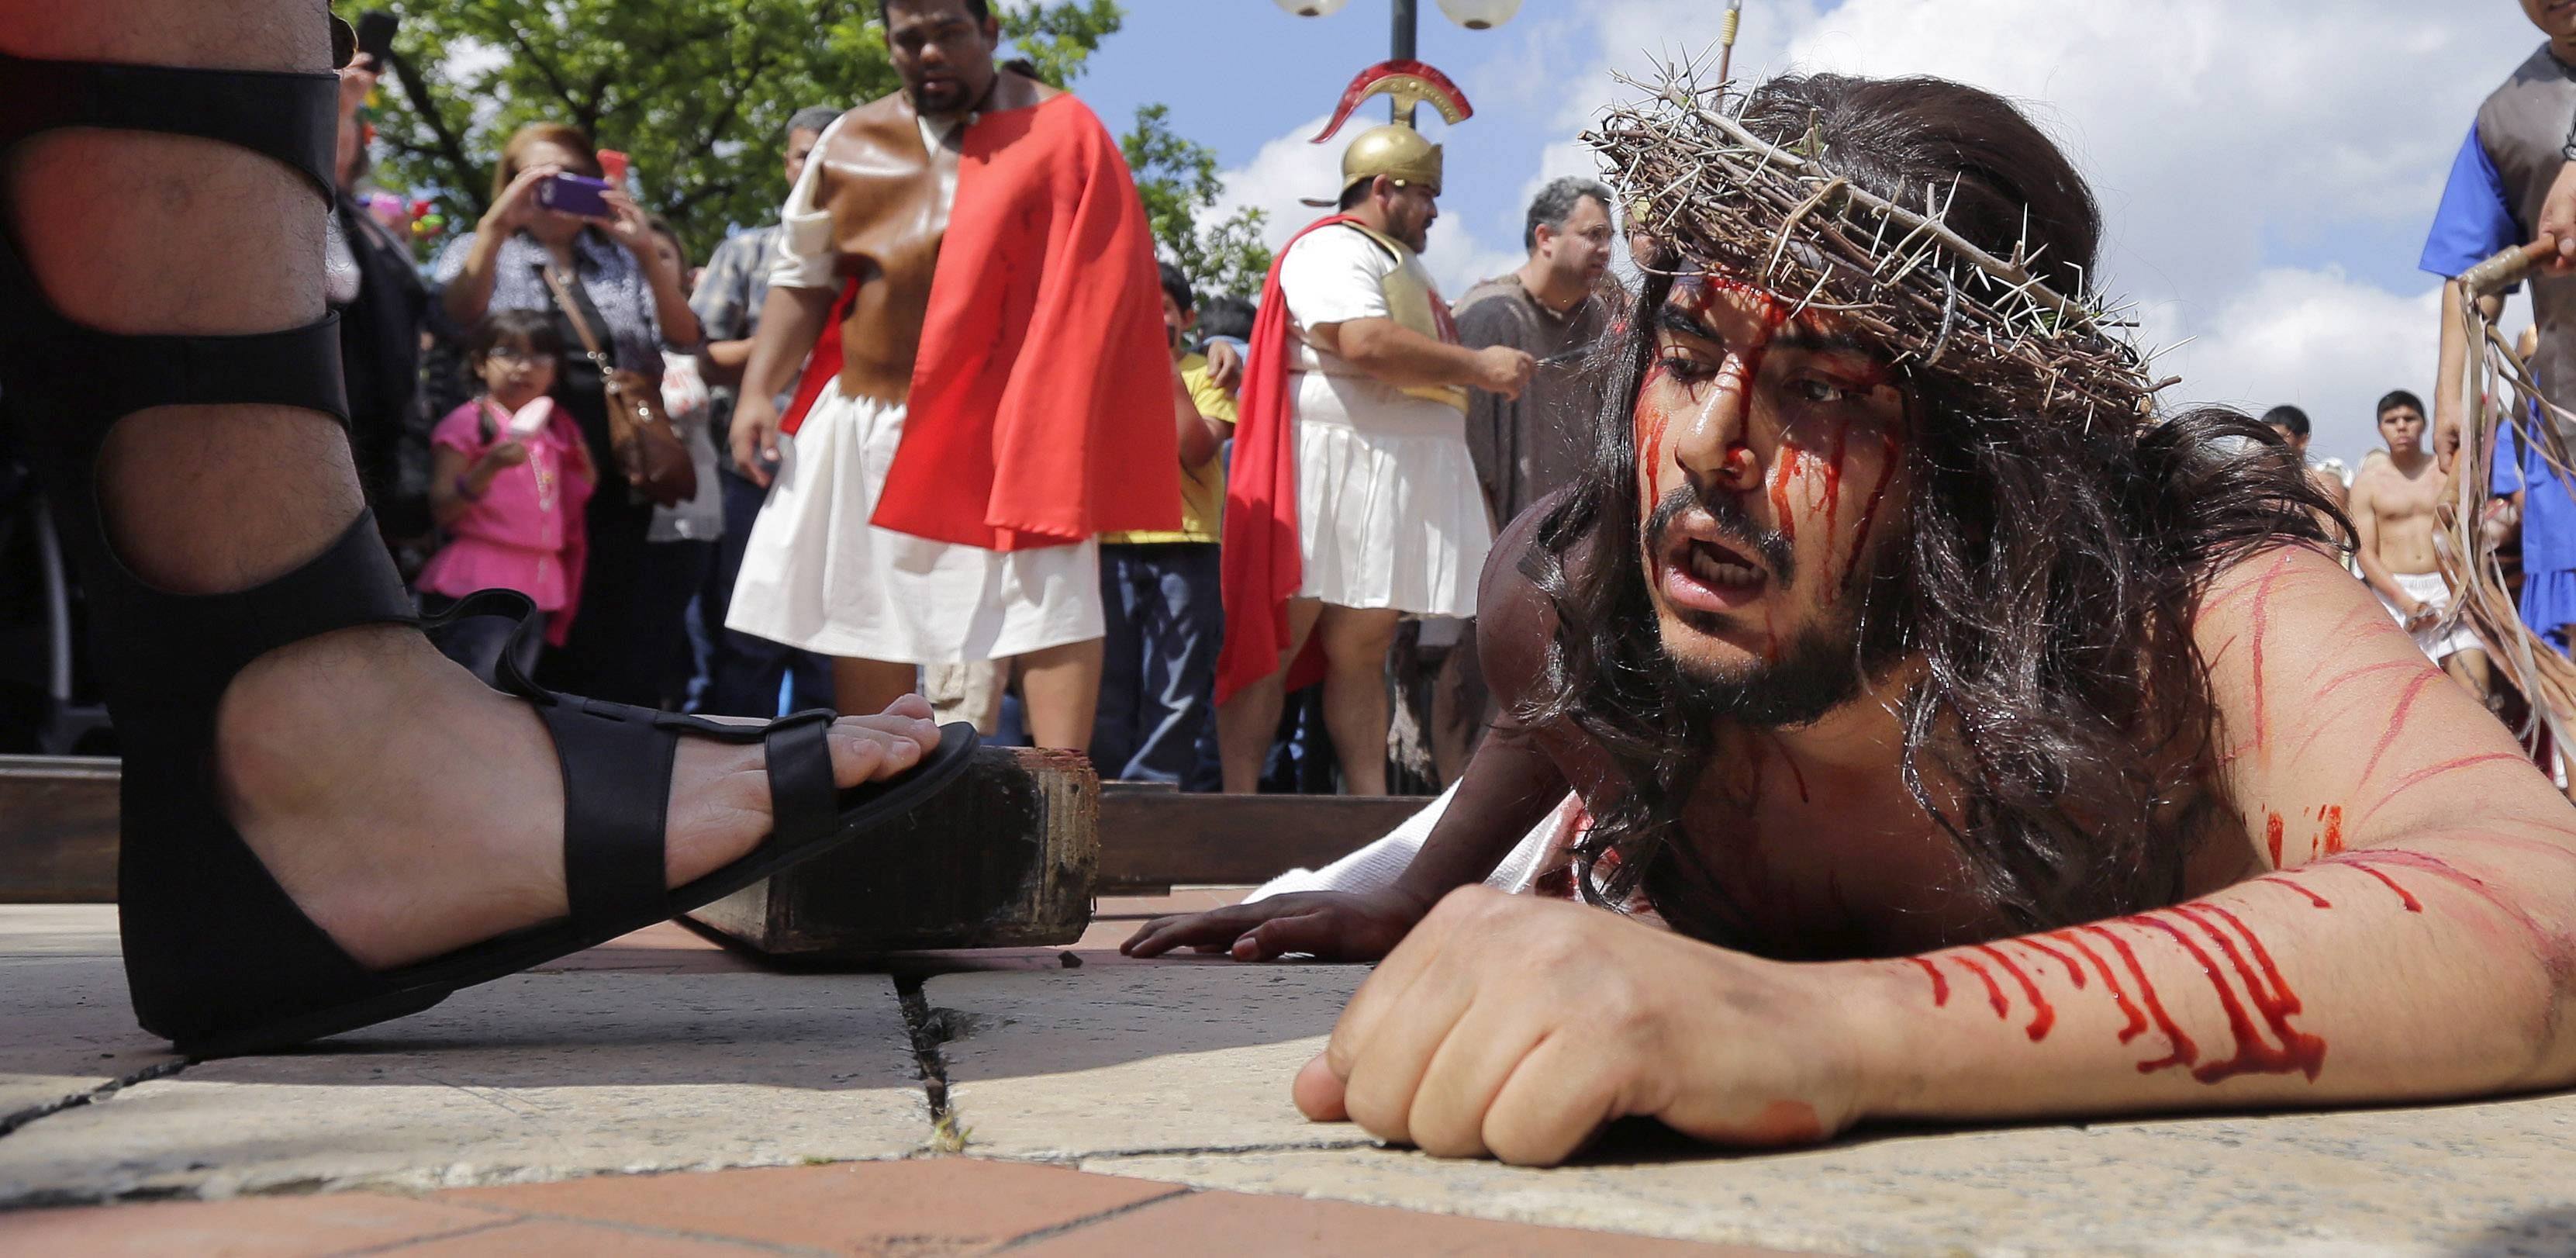 Jose Nina plays the part of Jesus in a passion play and procession, Friday, April 18, 2014, in downtown San Antonio.